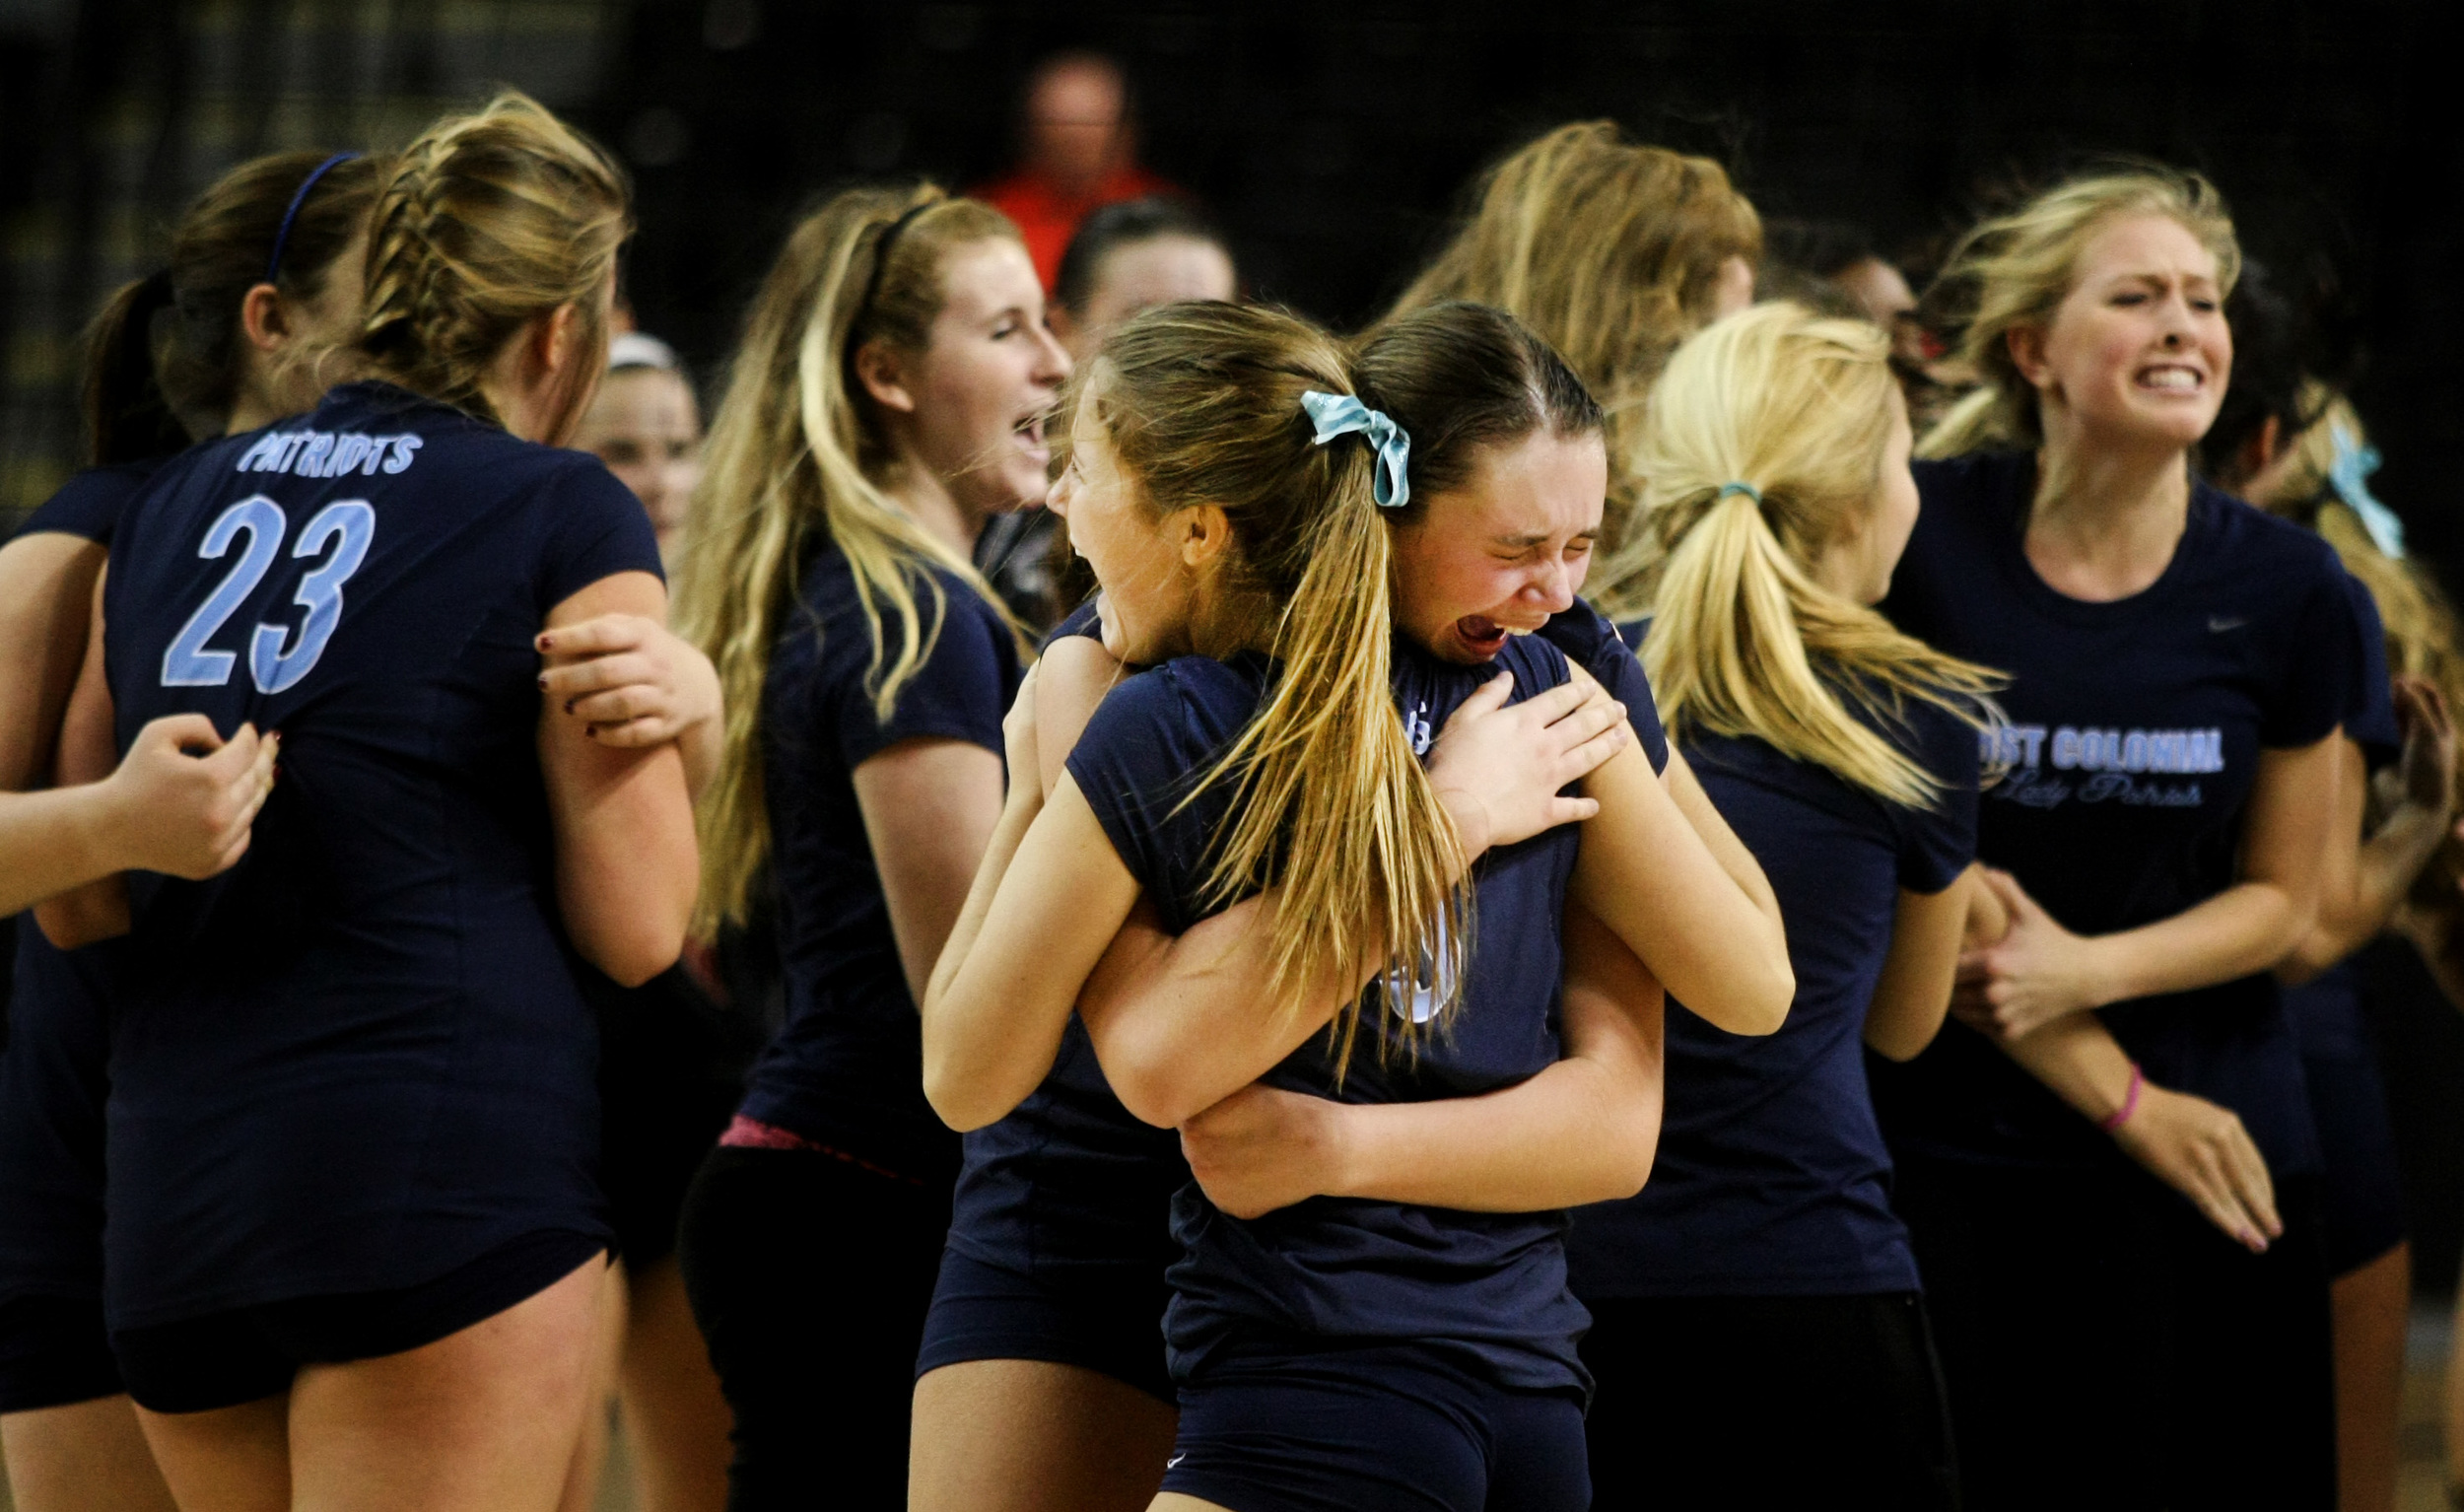 First Colonial's Rowan Ennis, center with face, and teammate Emily Guimond embrace after First Colonial beat James Madison in five-sets to claim the Group 6A girls volleyball championship, Friday, Nov. 21, 2014 at the Siegel Center in Richmond.  (Jason Hirschfeld   For The Virginian-Pilot)